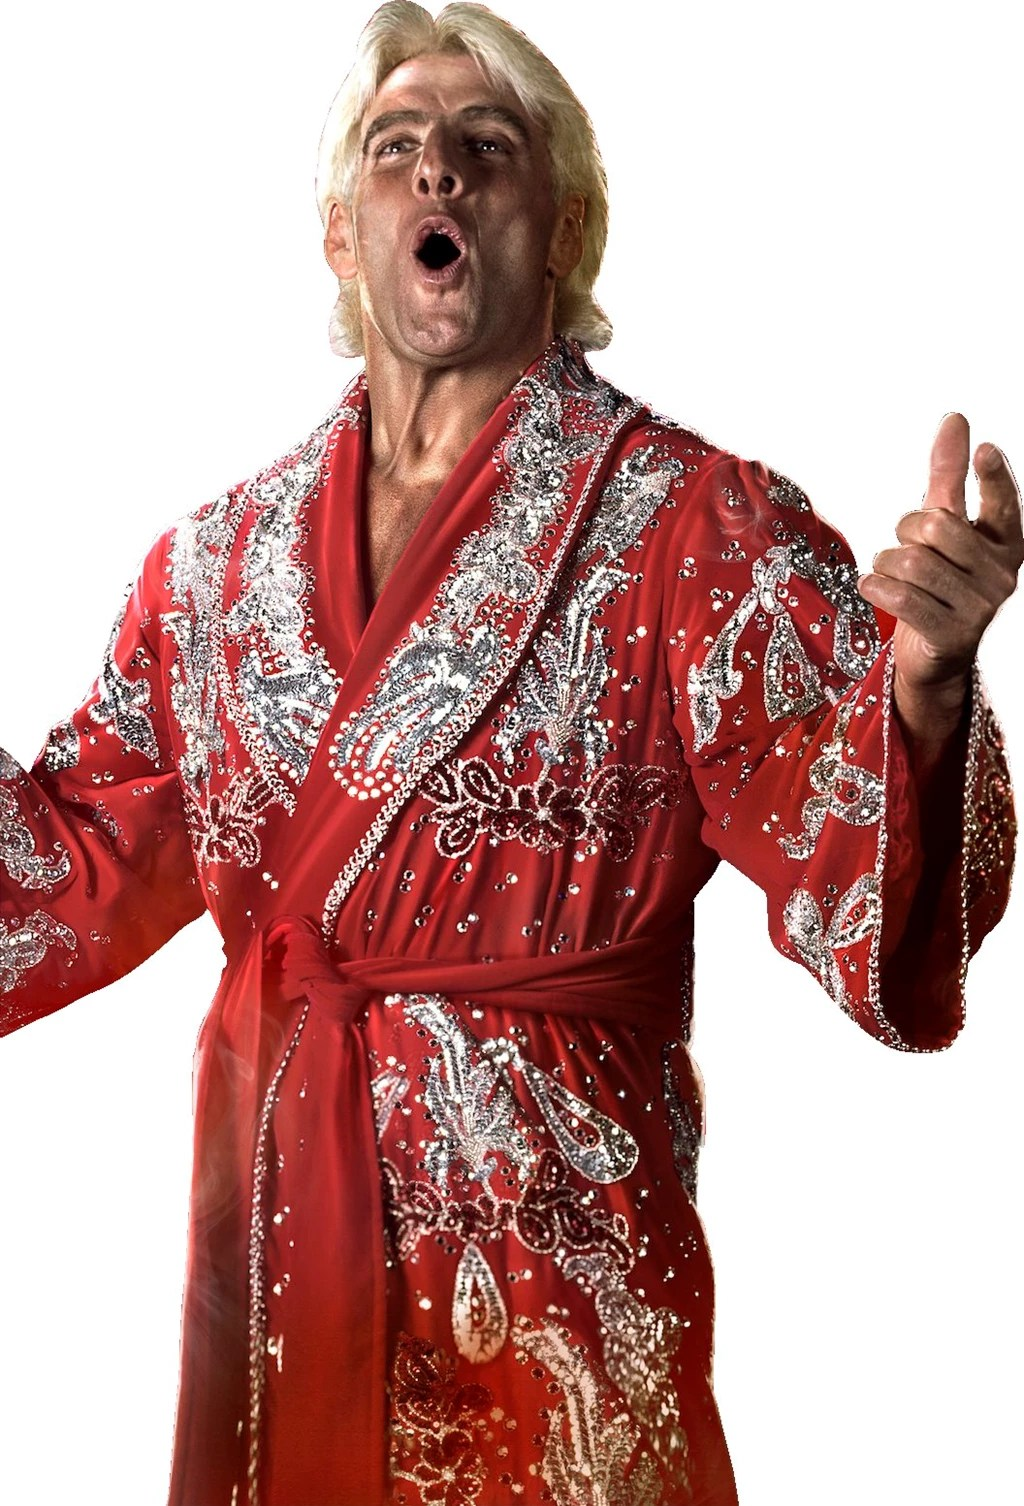 Iphone 6s Gold Wallpaper Deviantart More Like Wwe 2k14 Ric Flair Render Cutout By